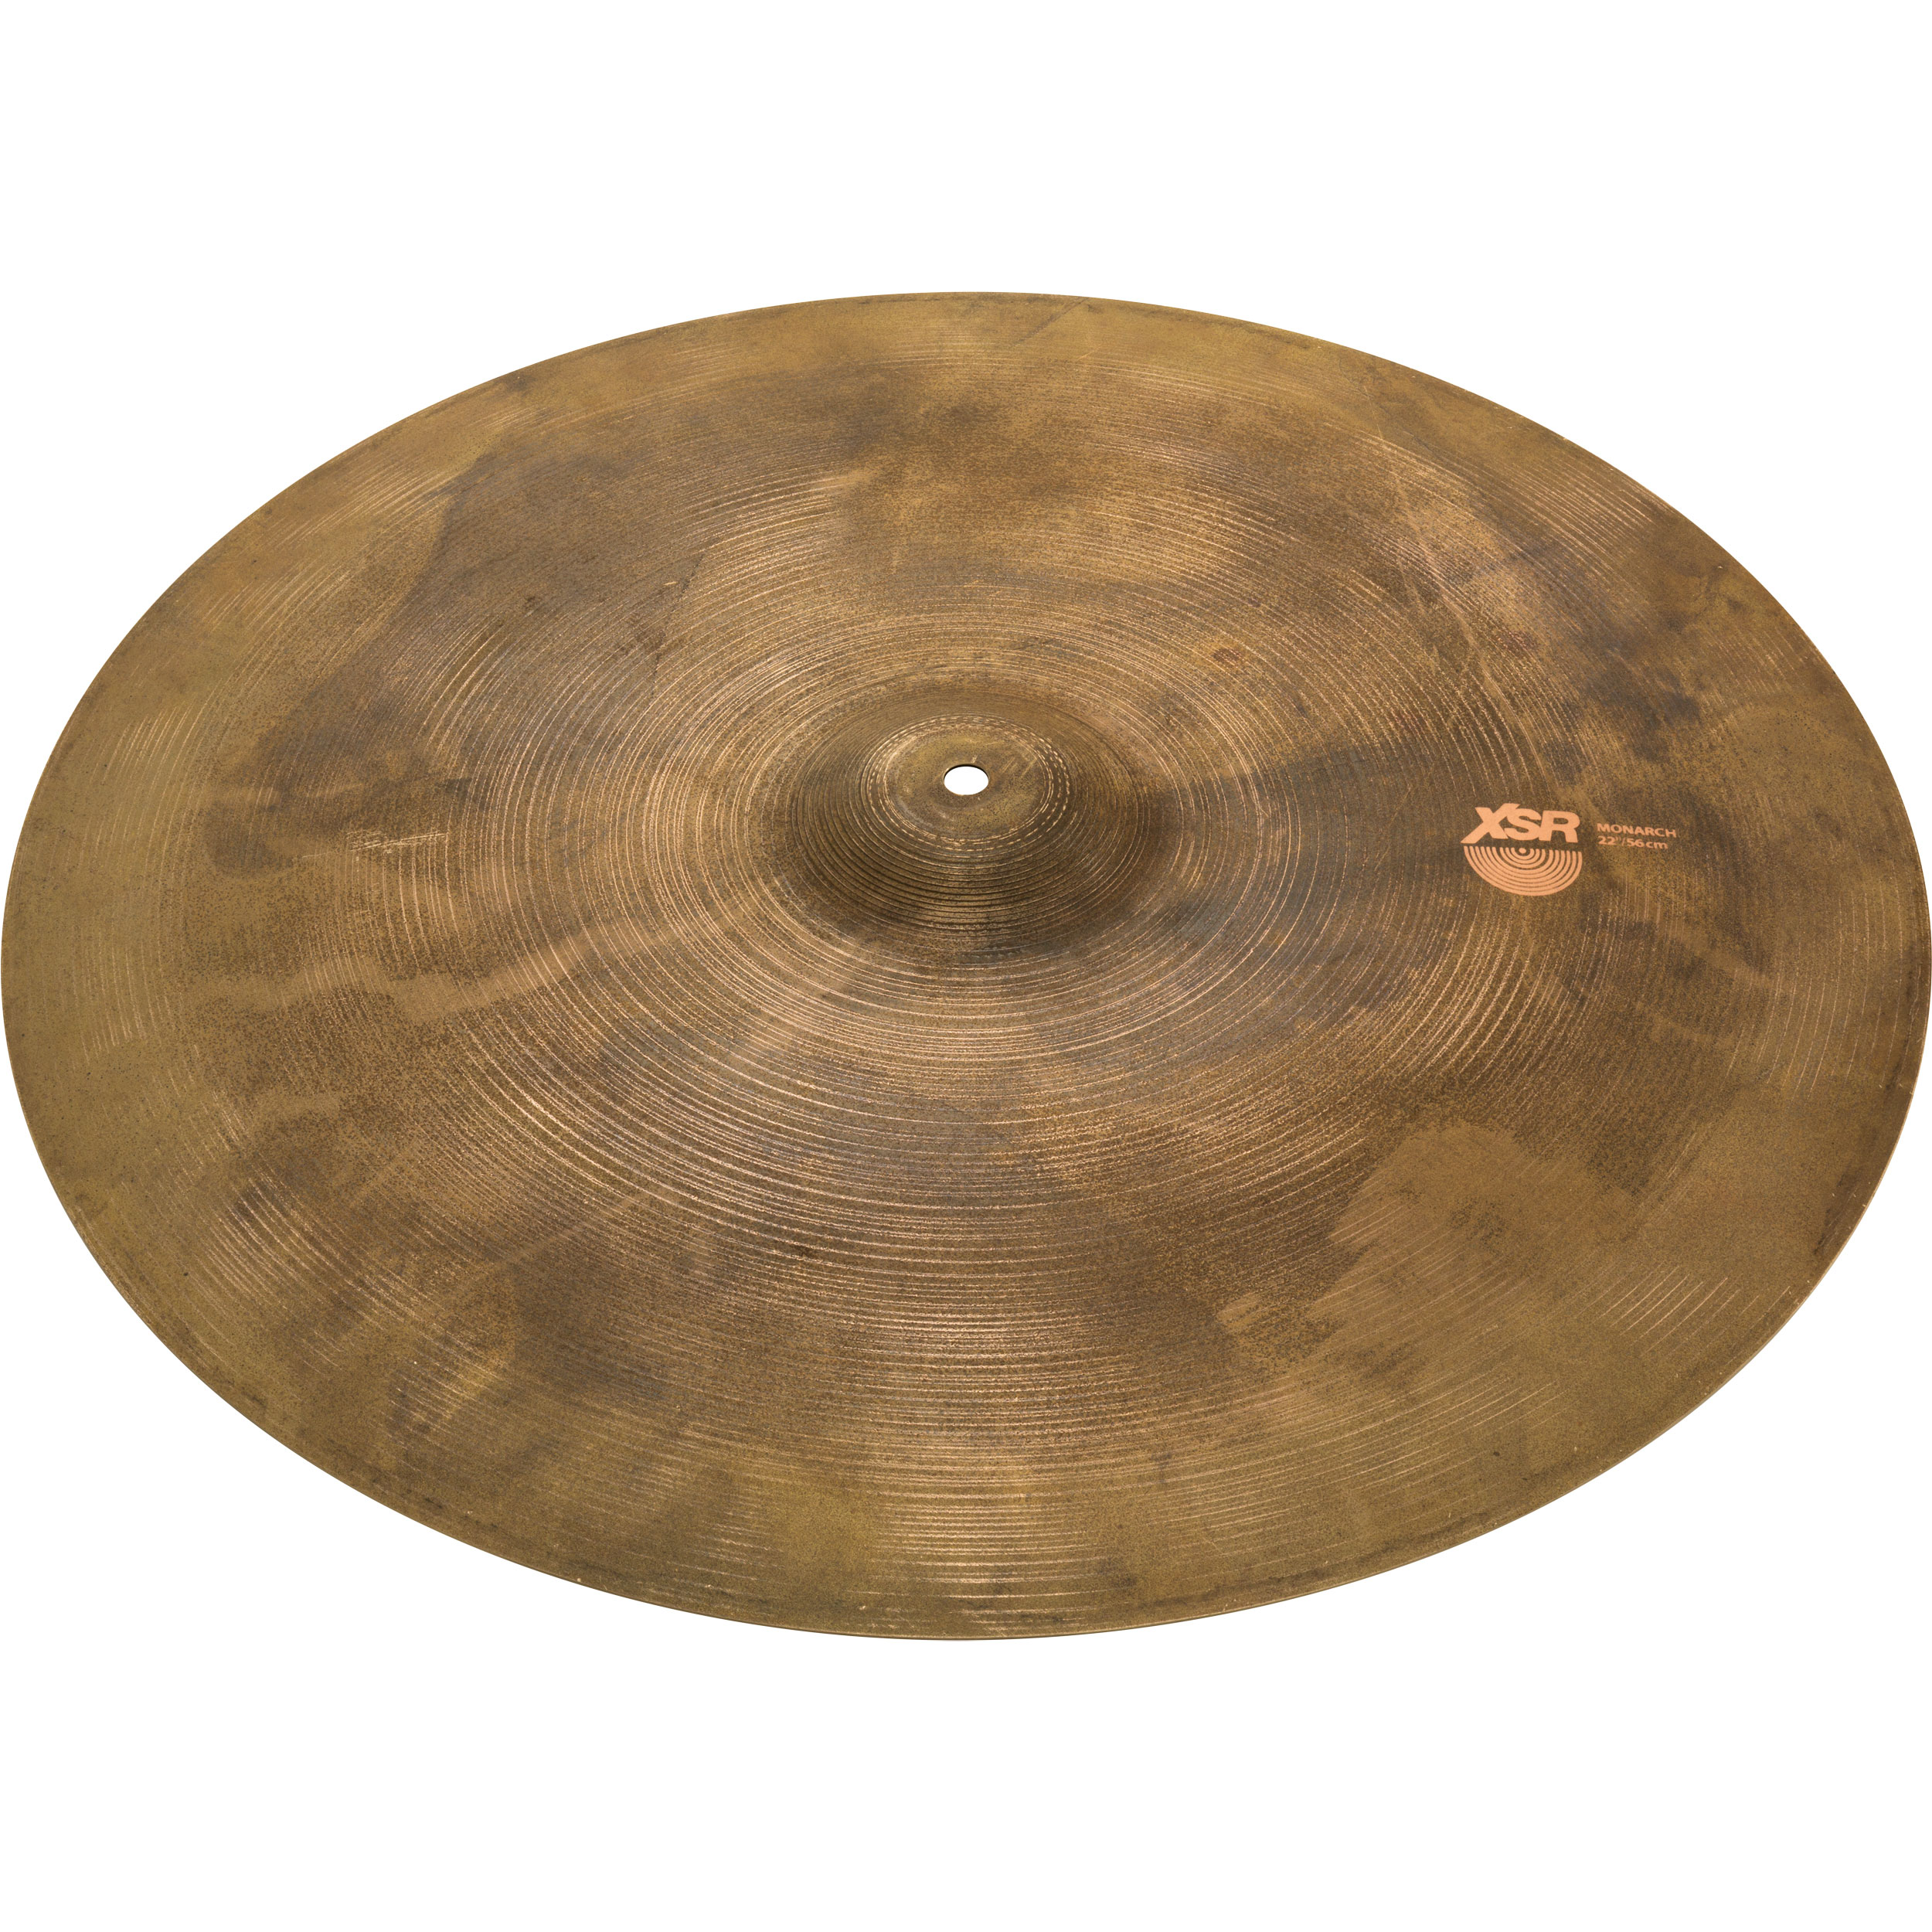 """Sabian 22"""" Big and Ugly XSR Monarch Ride Cymbal"""